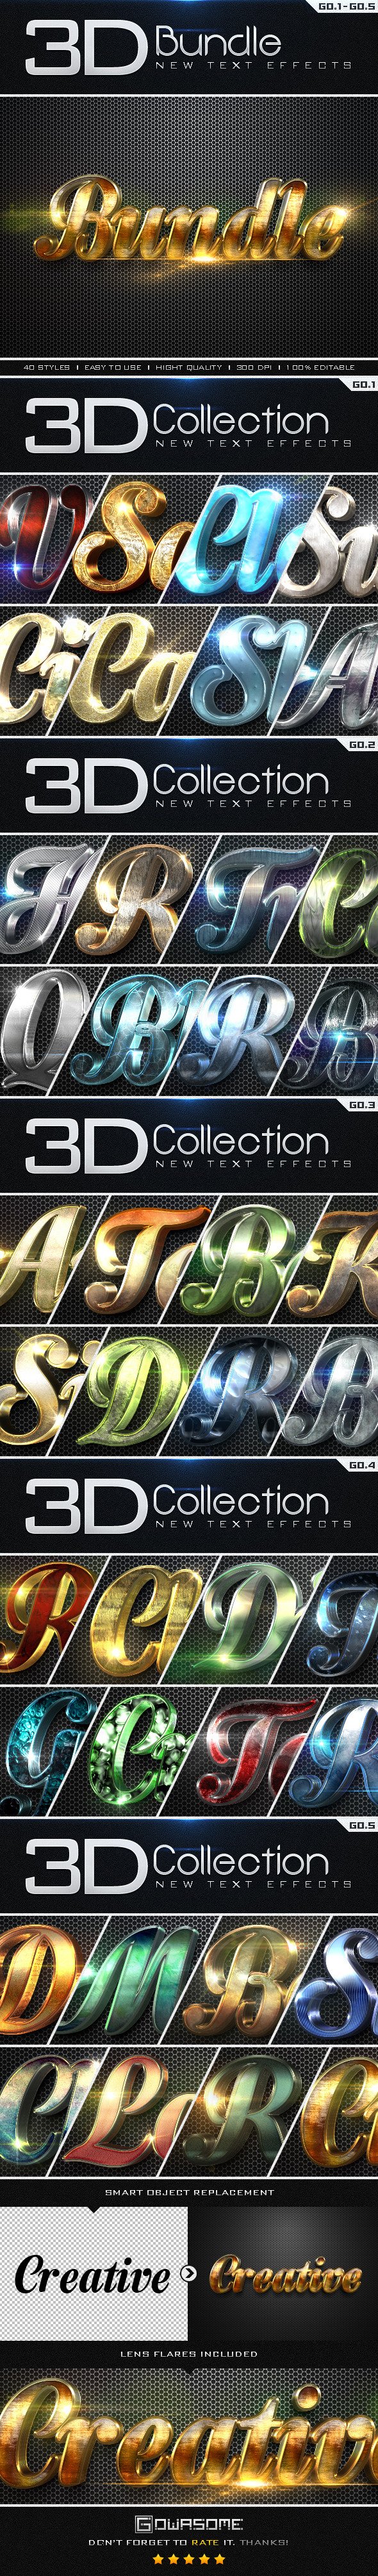 GraphicRiver New 3D Collection Text Effects Bundle 9792352